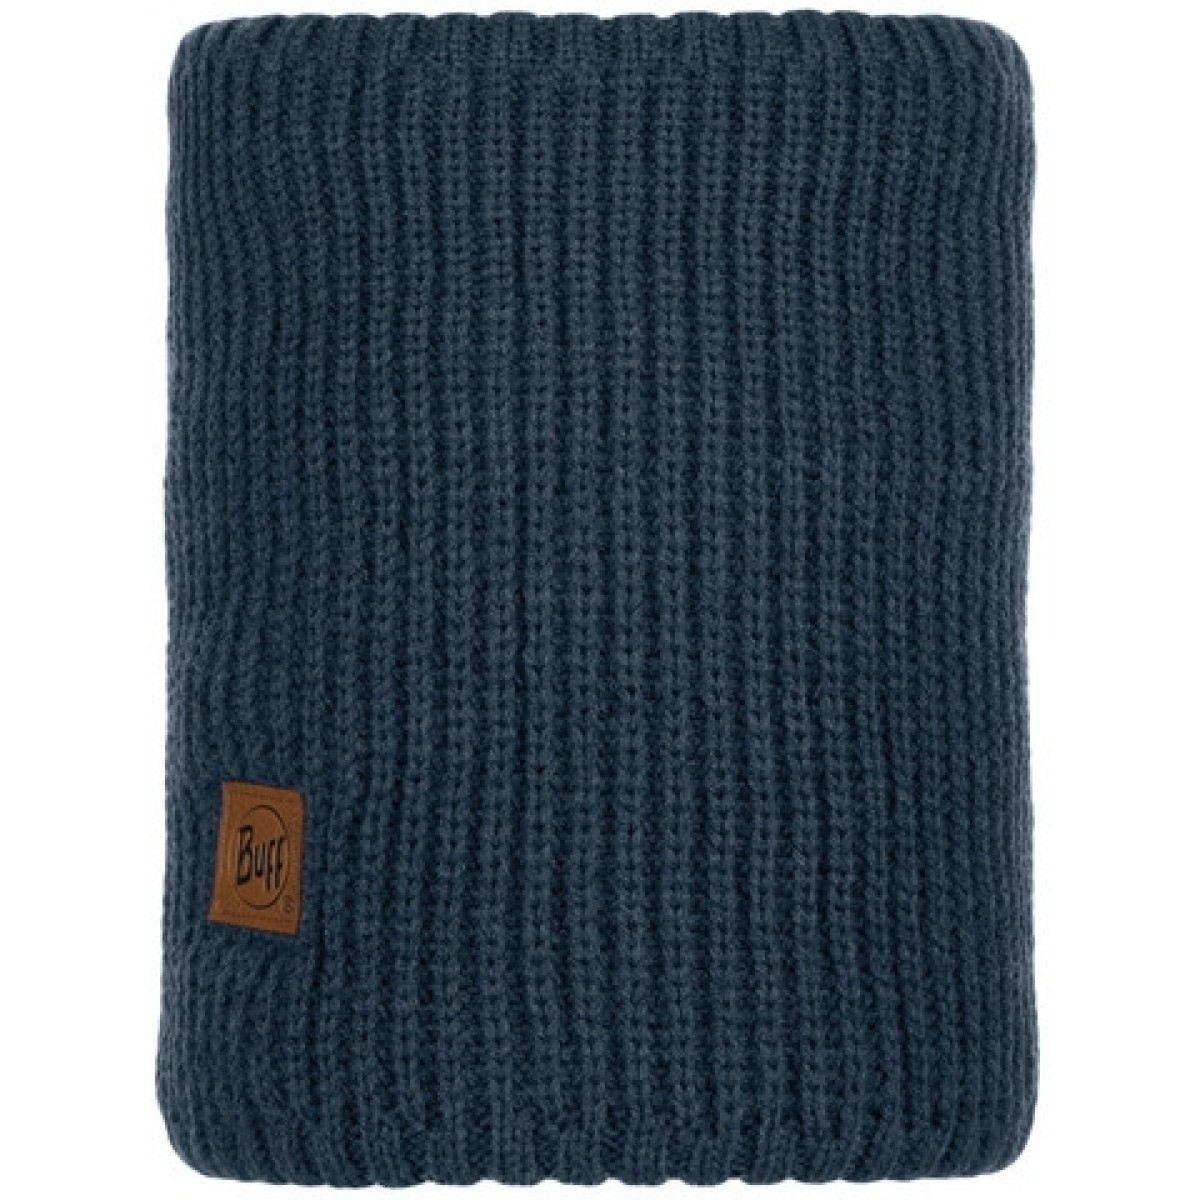 Buff Knitted Neckwarmer Rutger Medival Blue